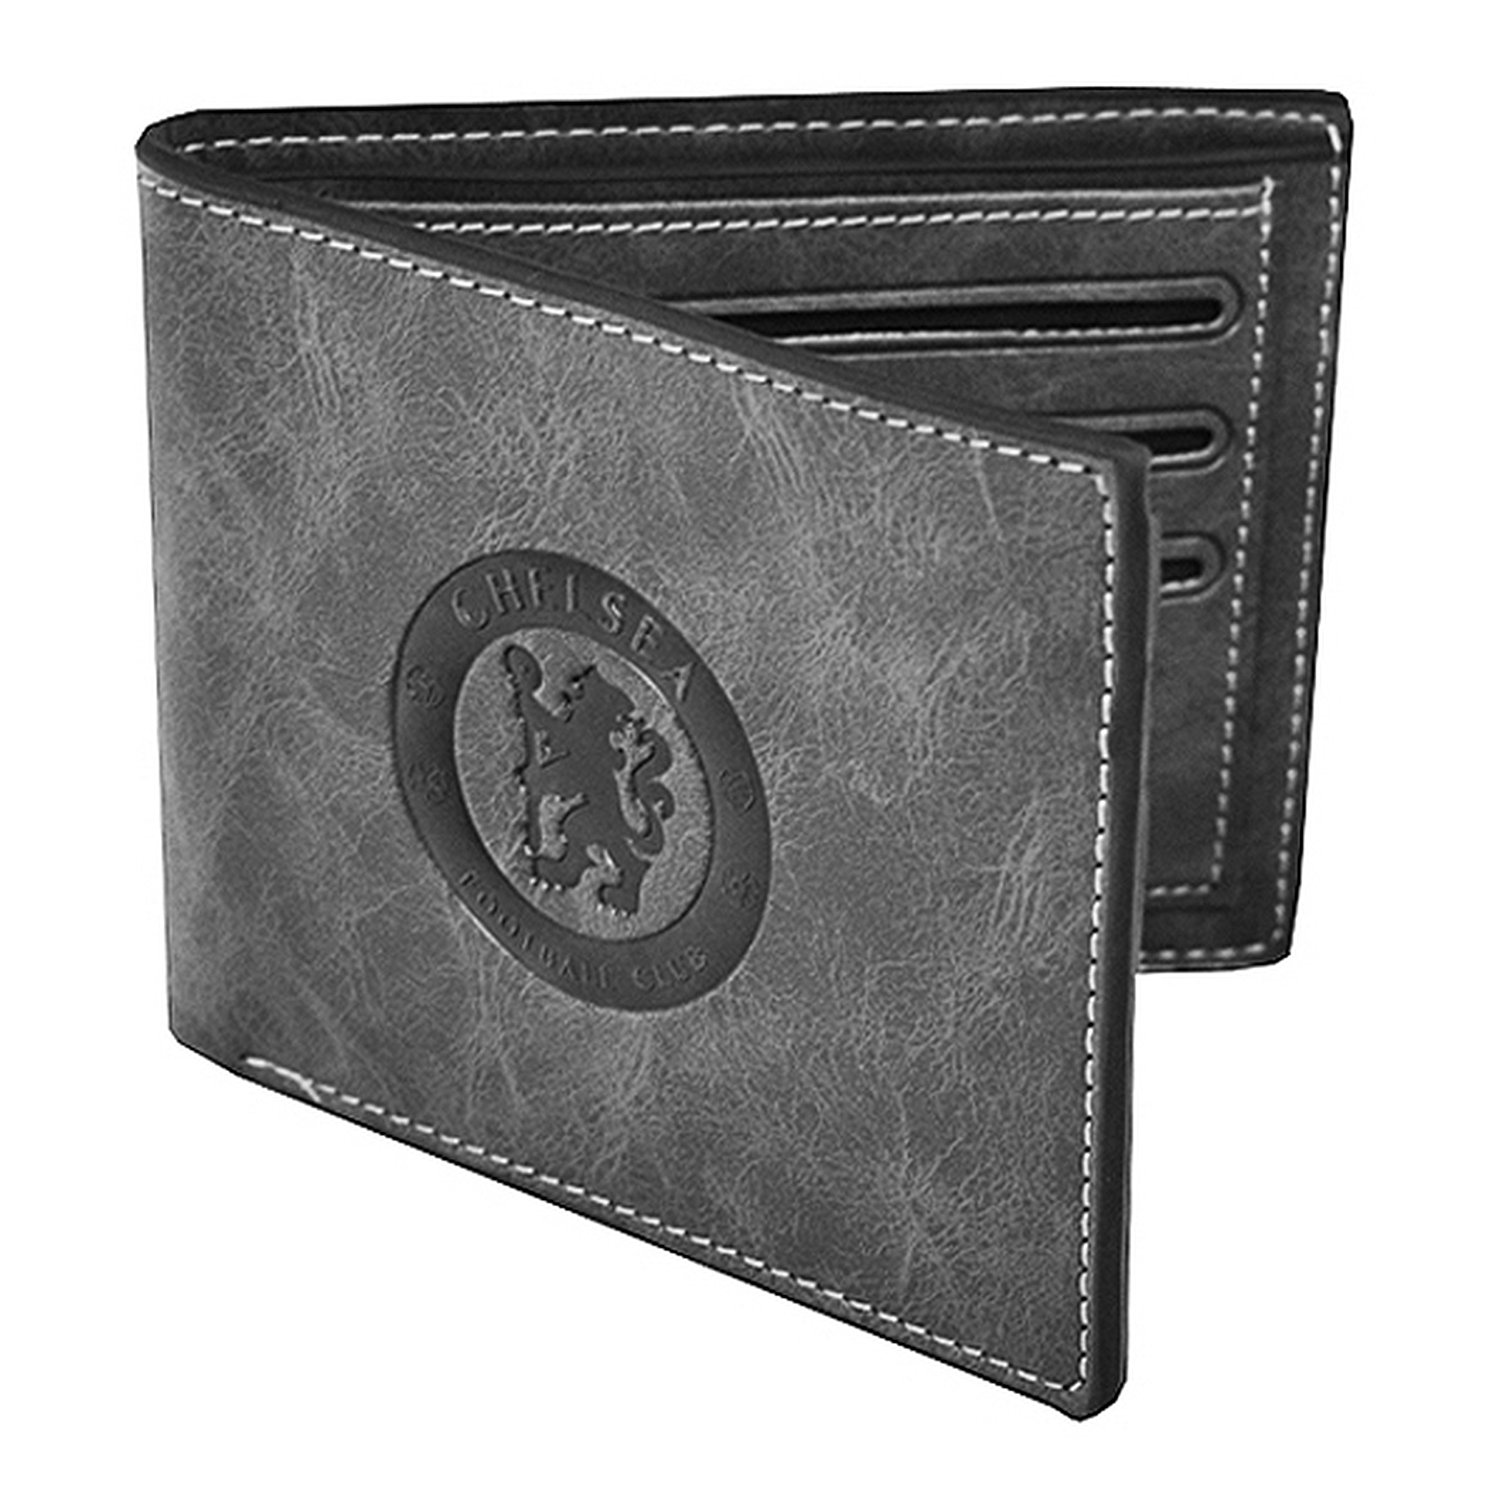 Chelsea FC Official Leather Suede Football Crest Wallet